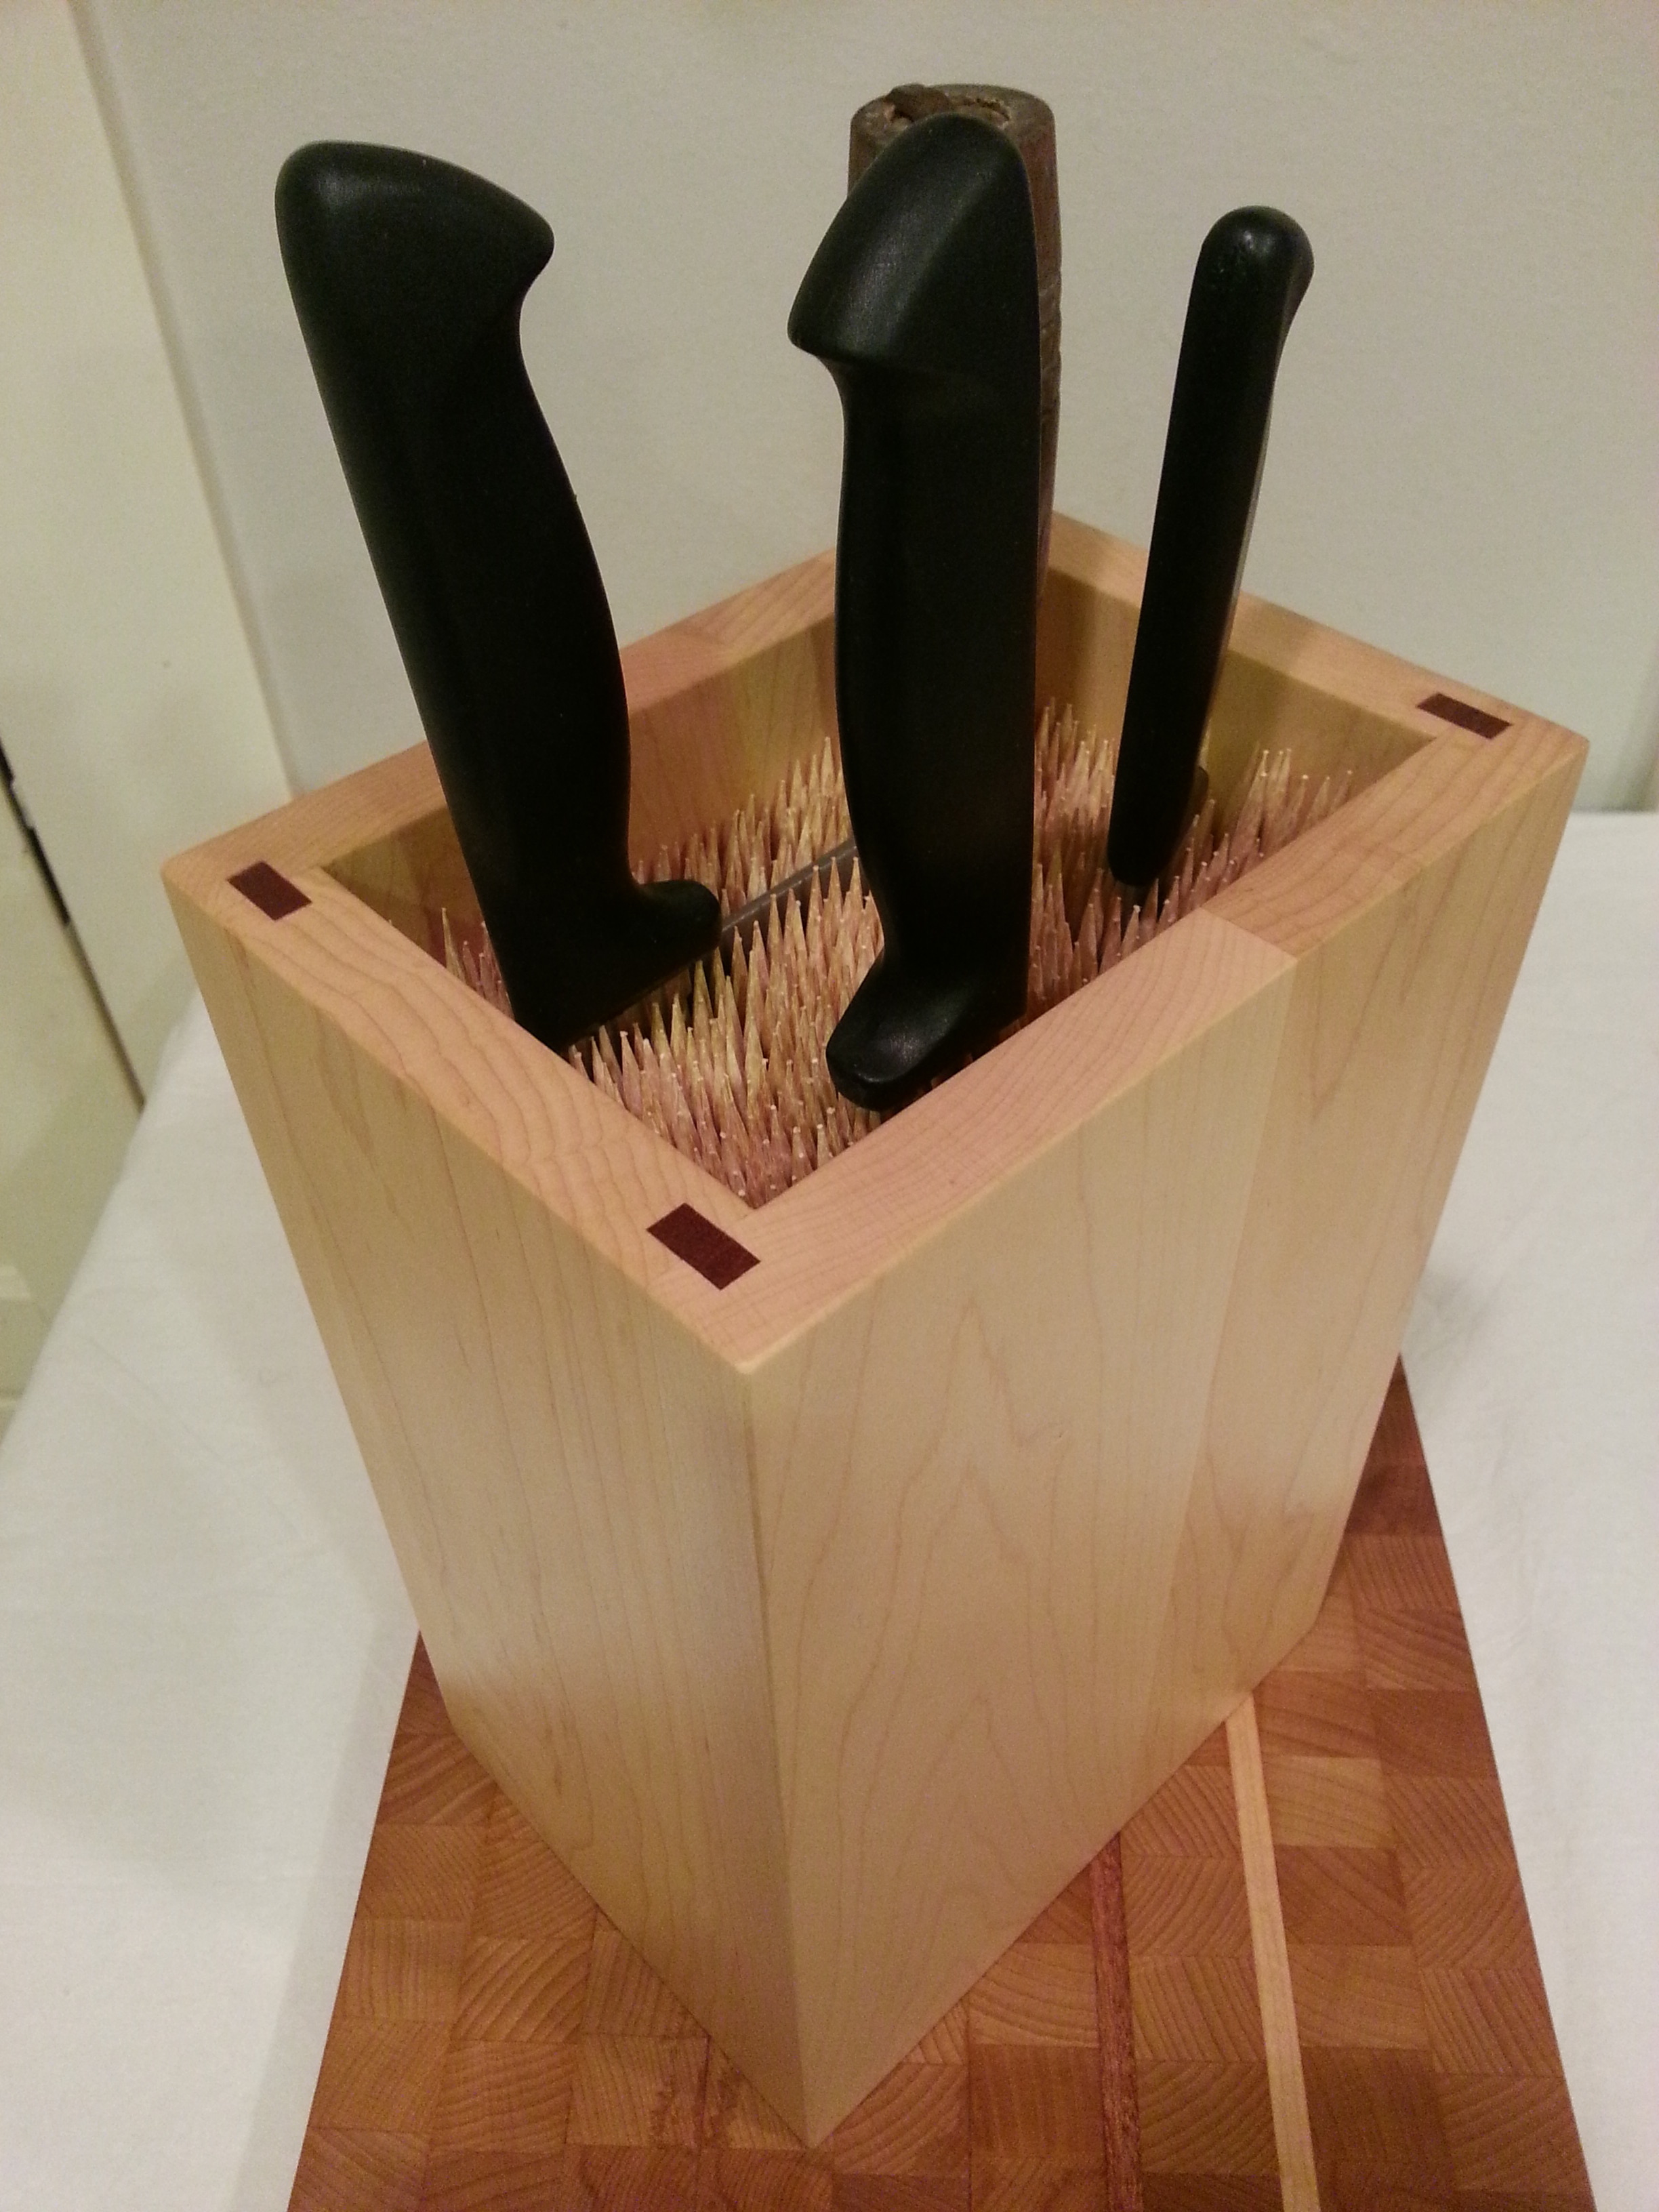 Bamboo Skewer Knife Block Plans